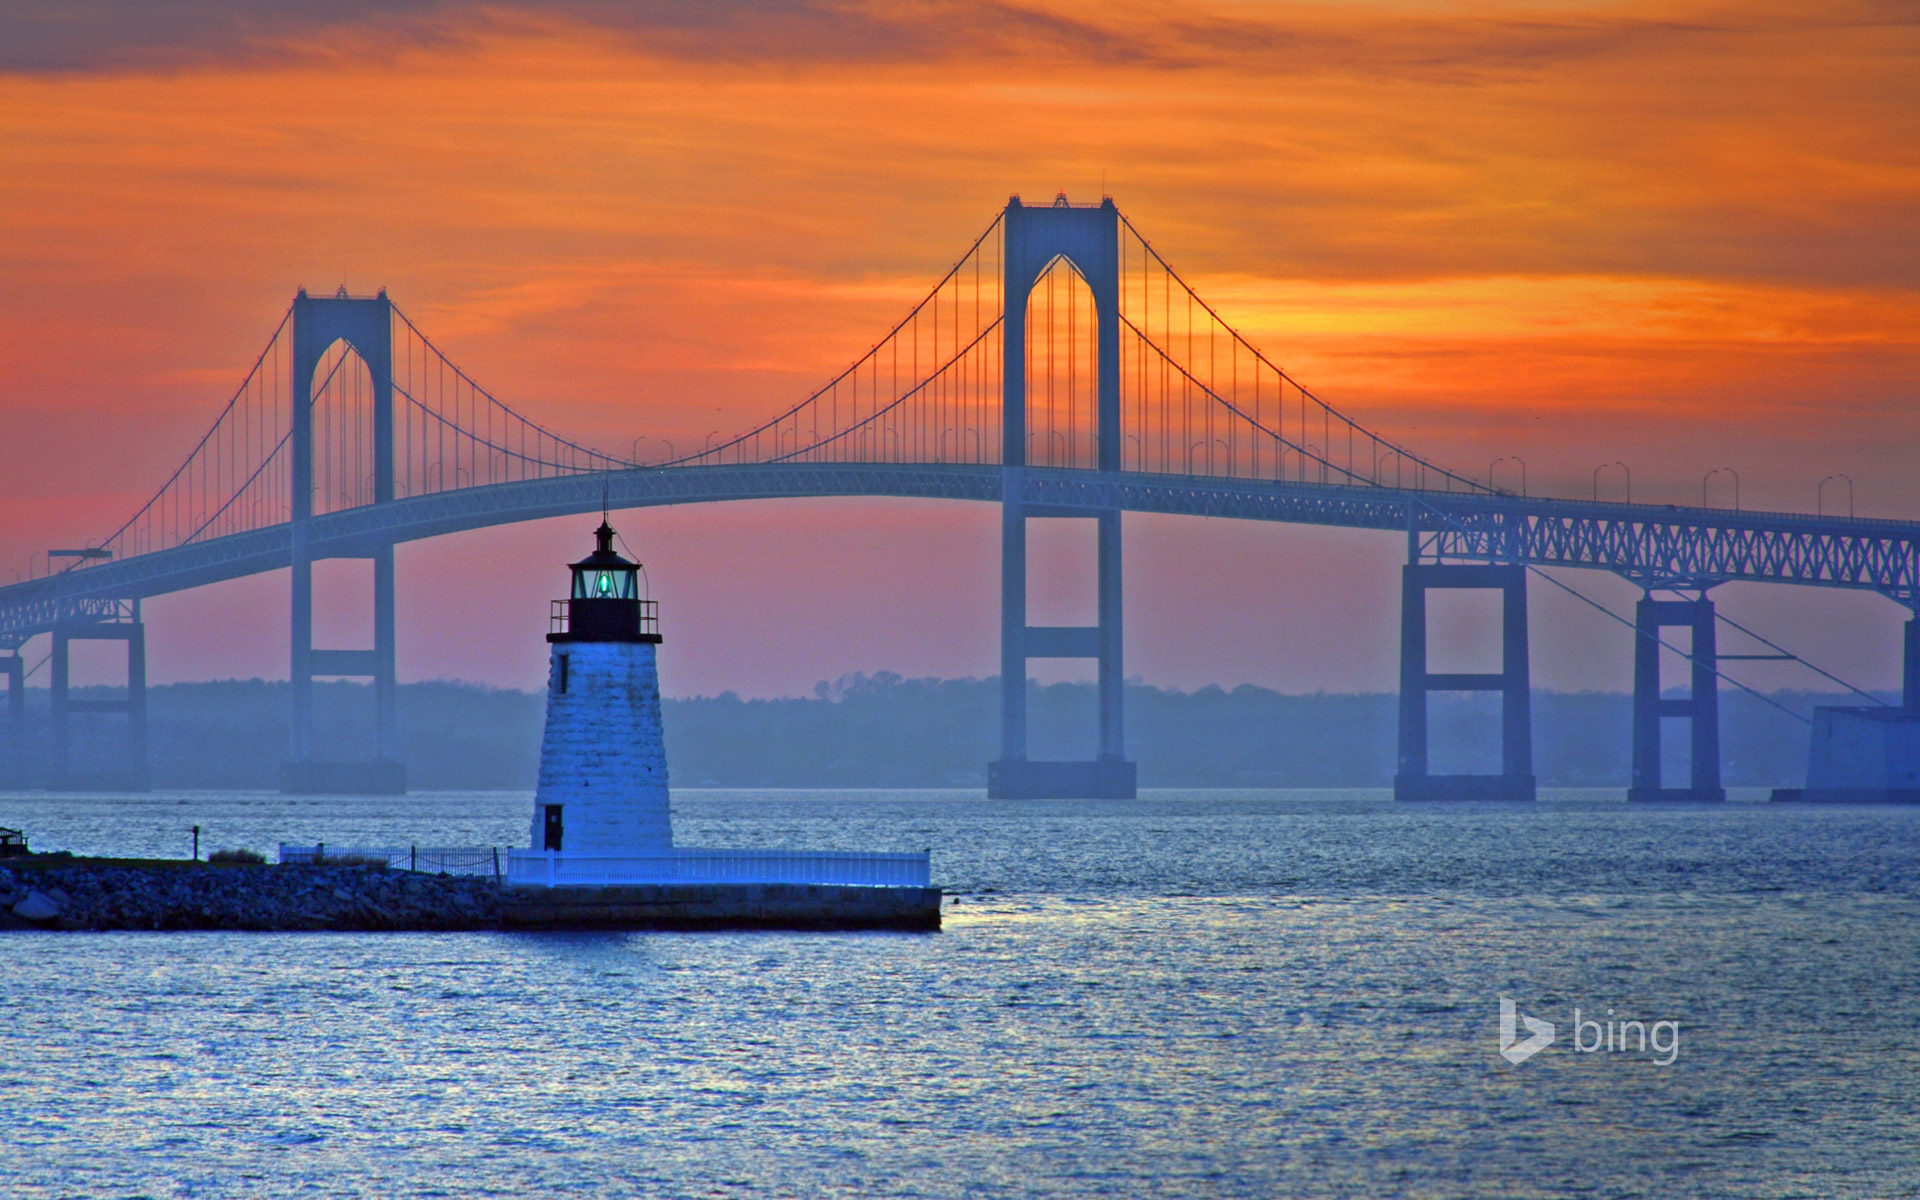 Claiborne Pell Newport Bridge and Newport Harbor Light in Newport, Rhode Island